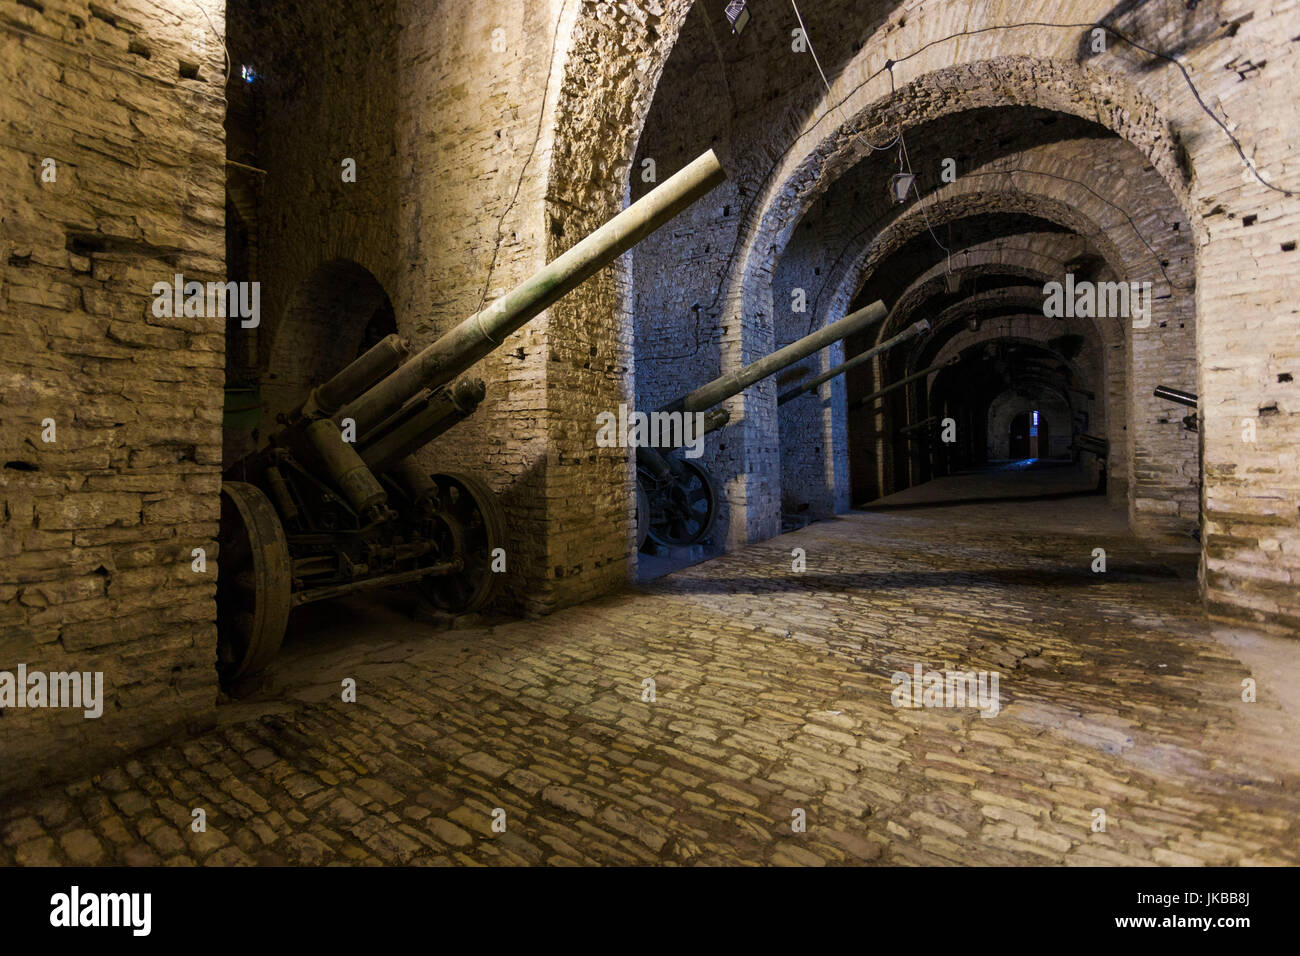 Albania, Gjirokastra, castle, National Museum of Armaments, artillery - Stock Image